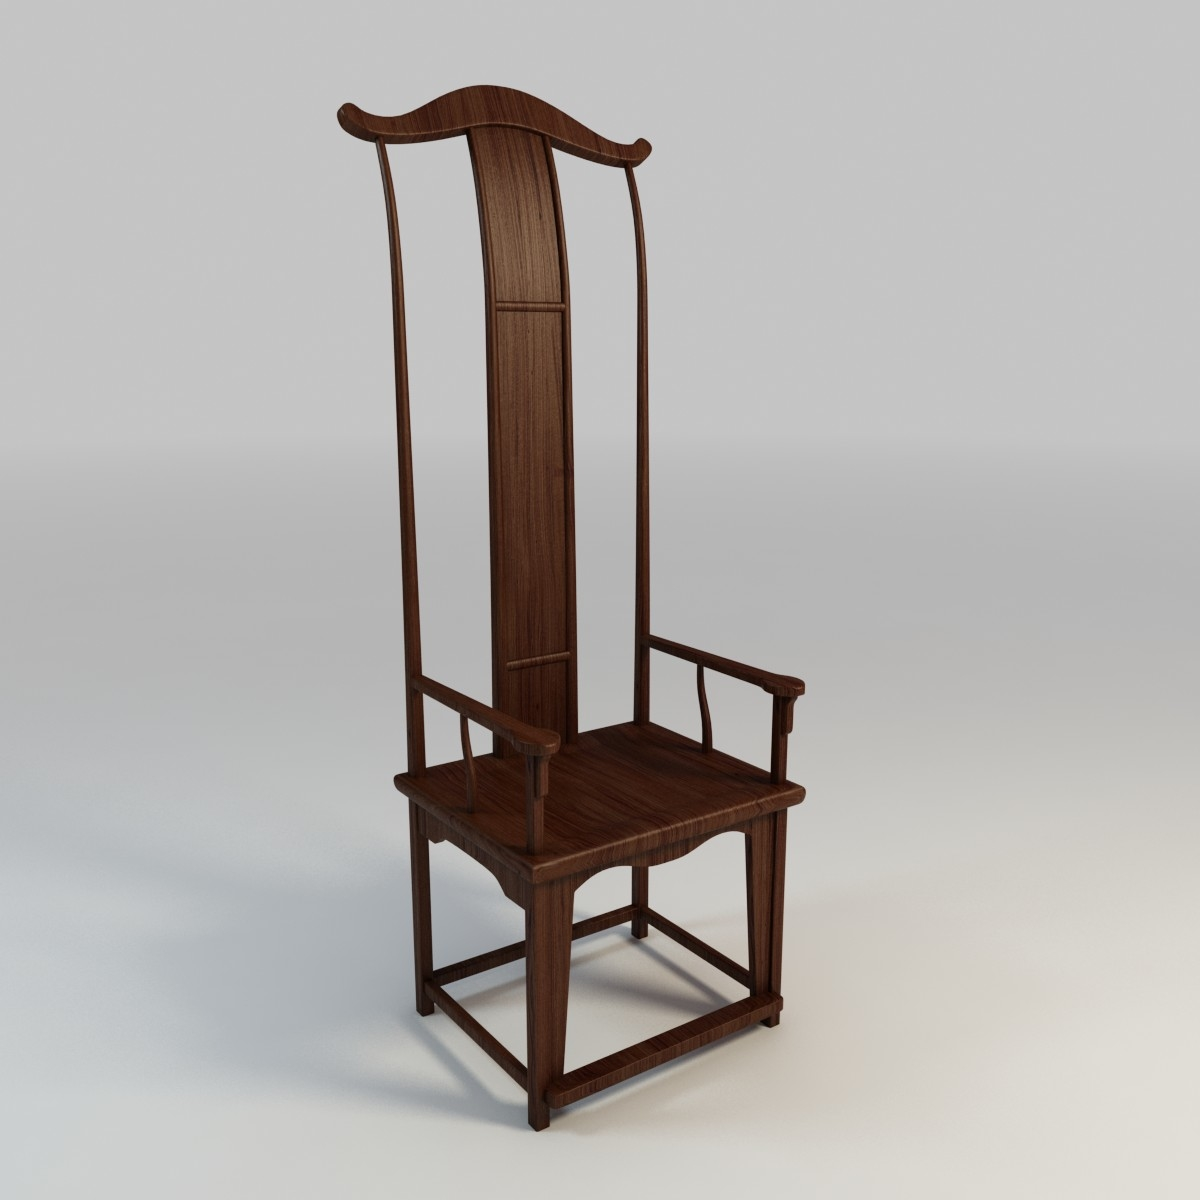 Groovy Arhaus Wood Arm Chair Forskolin Free Trial Chair Design Images Forskolin Free Trialorg